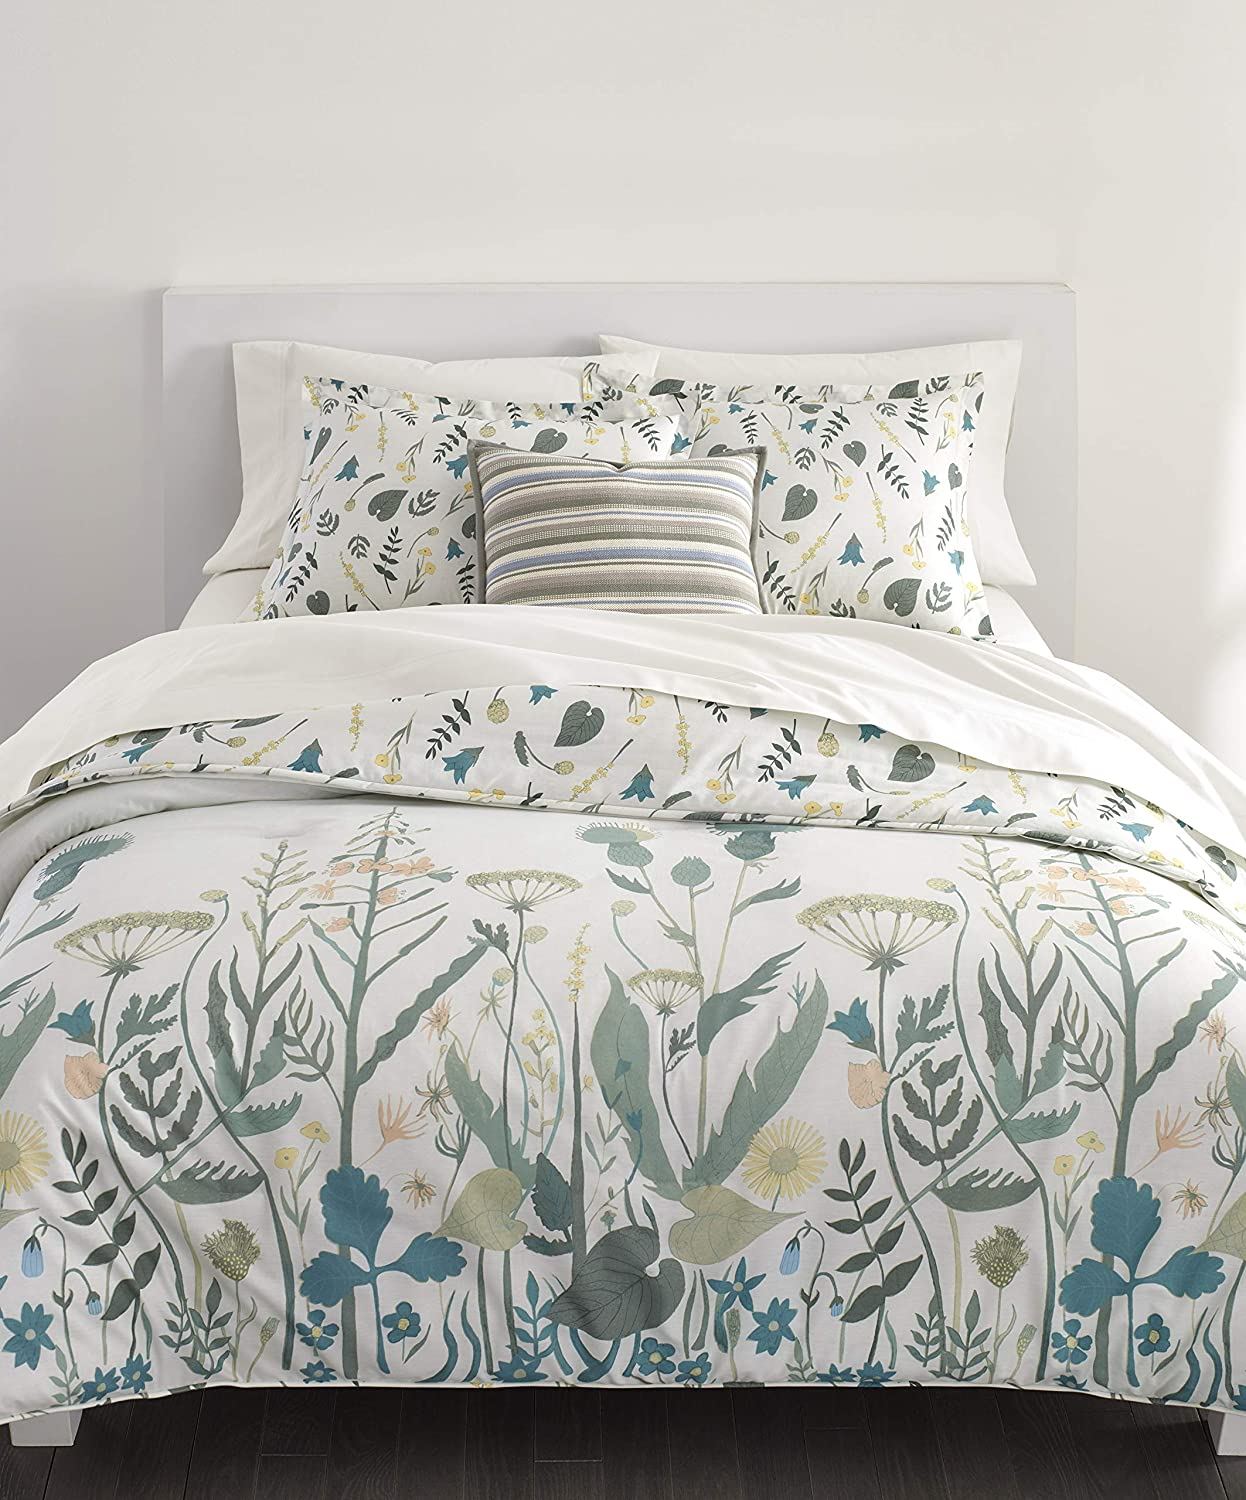 Chaps Home Gainsborough Garden 100% Cotton Printed 3-Piece Reversible, Highly Breathable Comforter Set, King, Green Multi